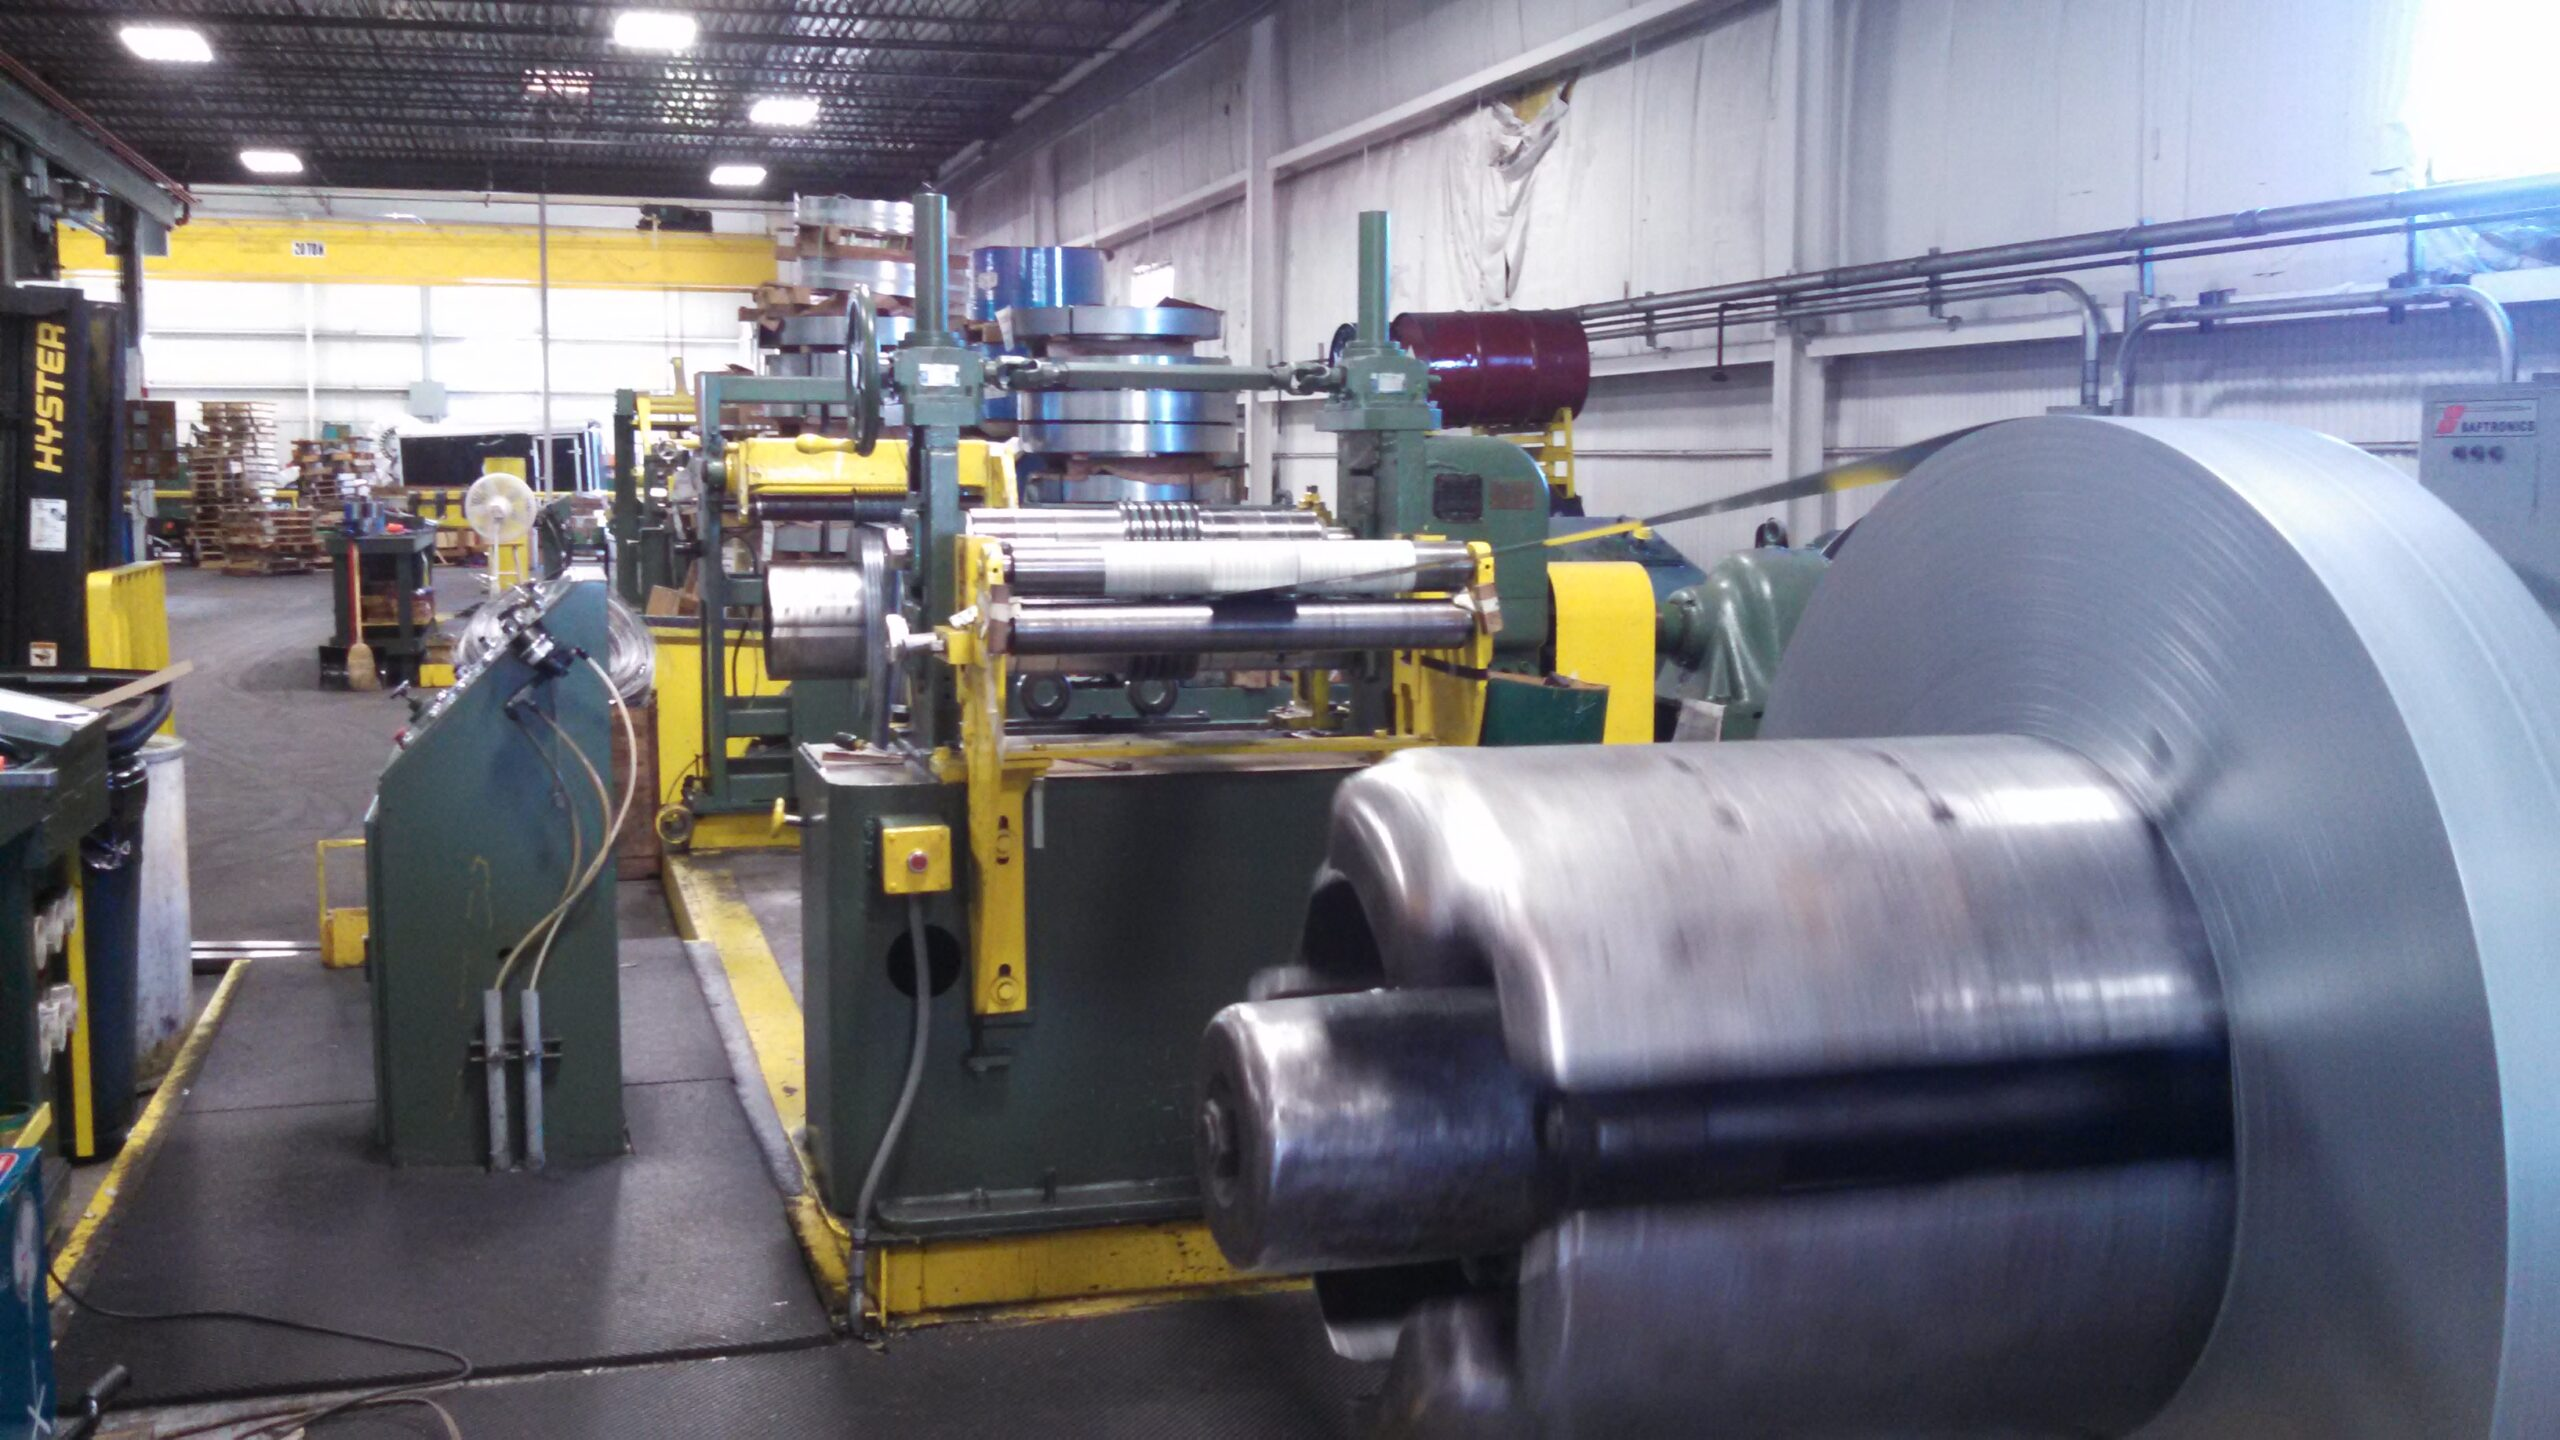 24 Inch Steel Slitting Machine at Consolidation Metals